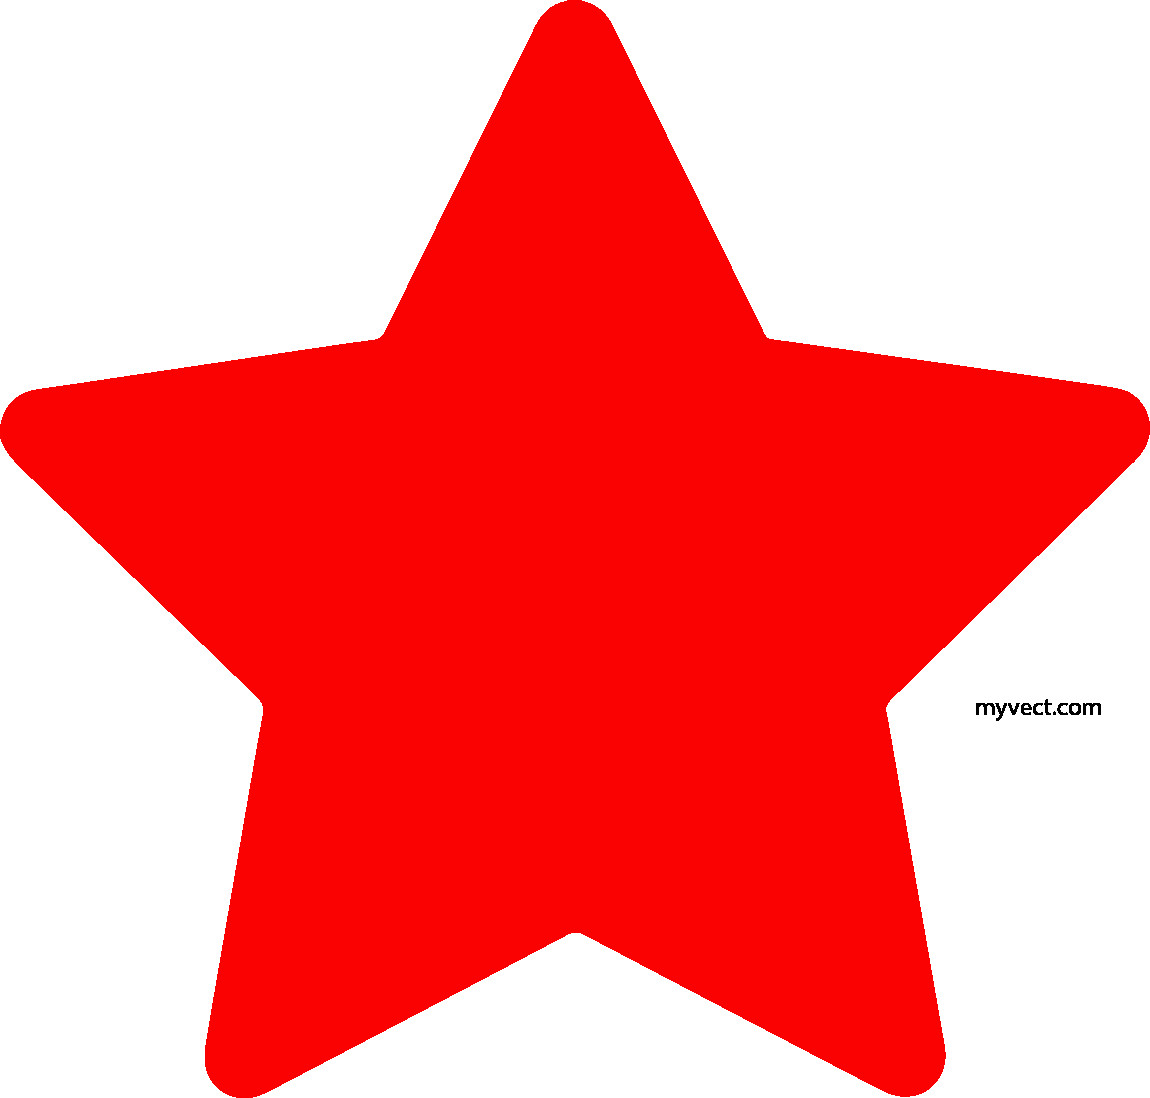 1150x1098 Star Vector Awesome Red Star Vector Myvect 3axid